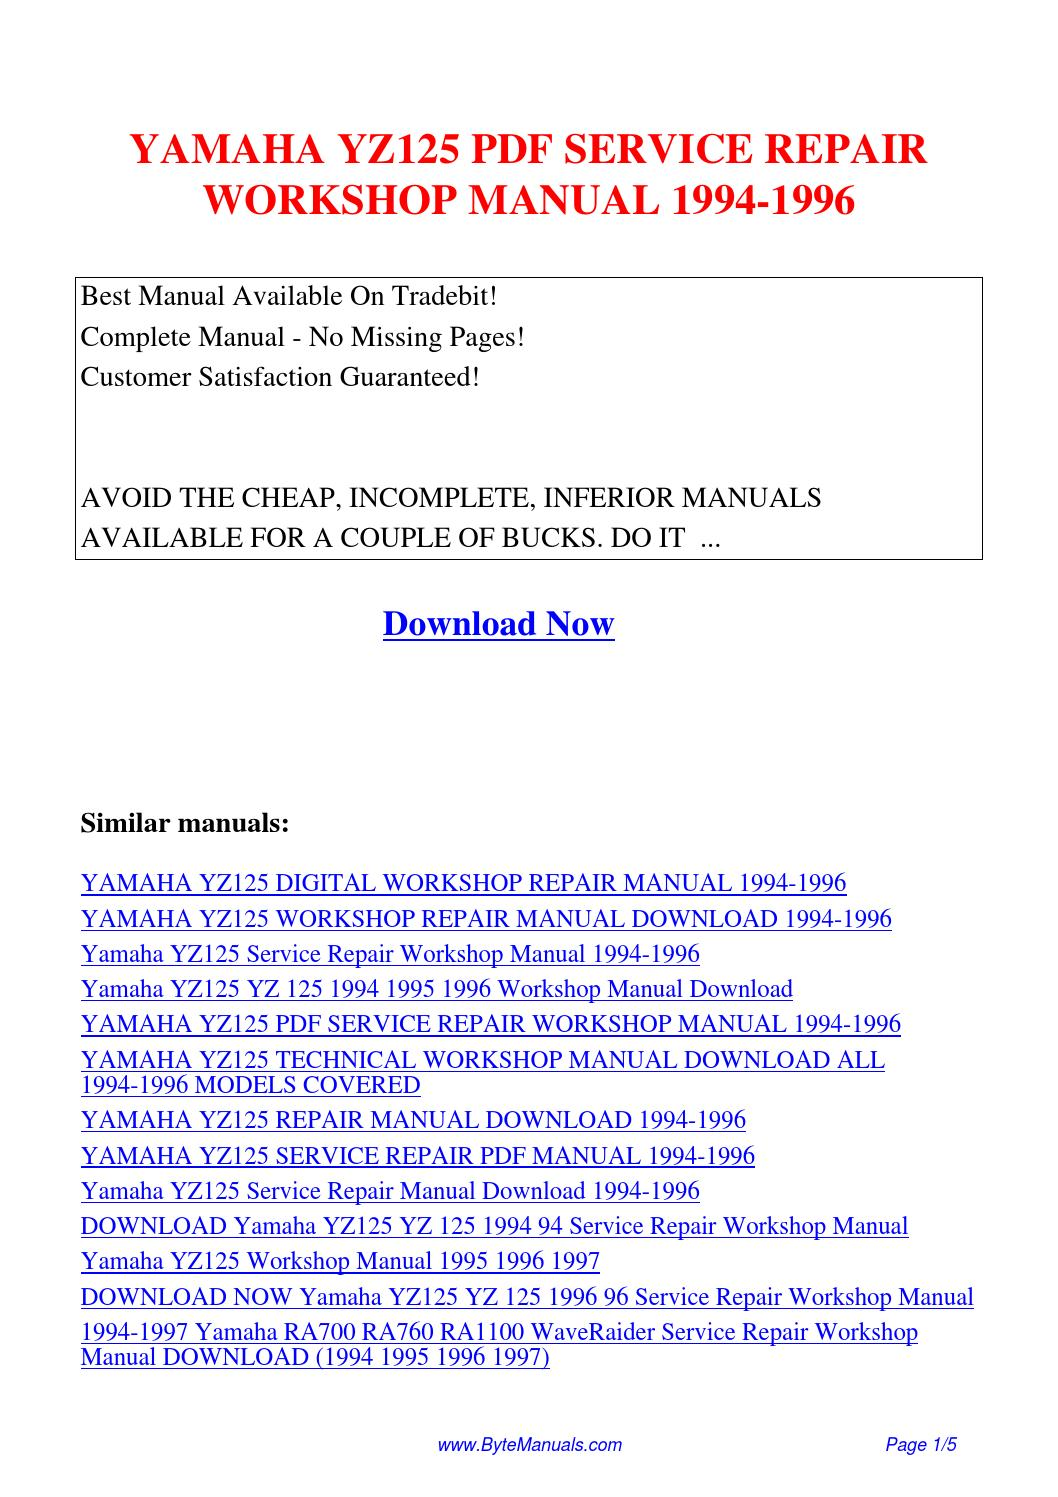 YAMAHA YZ125 SERVICE REPAIR WORKSHOP MANUAL 1994-1996.pdf by Ging Tang -  issuu